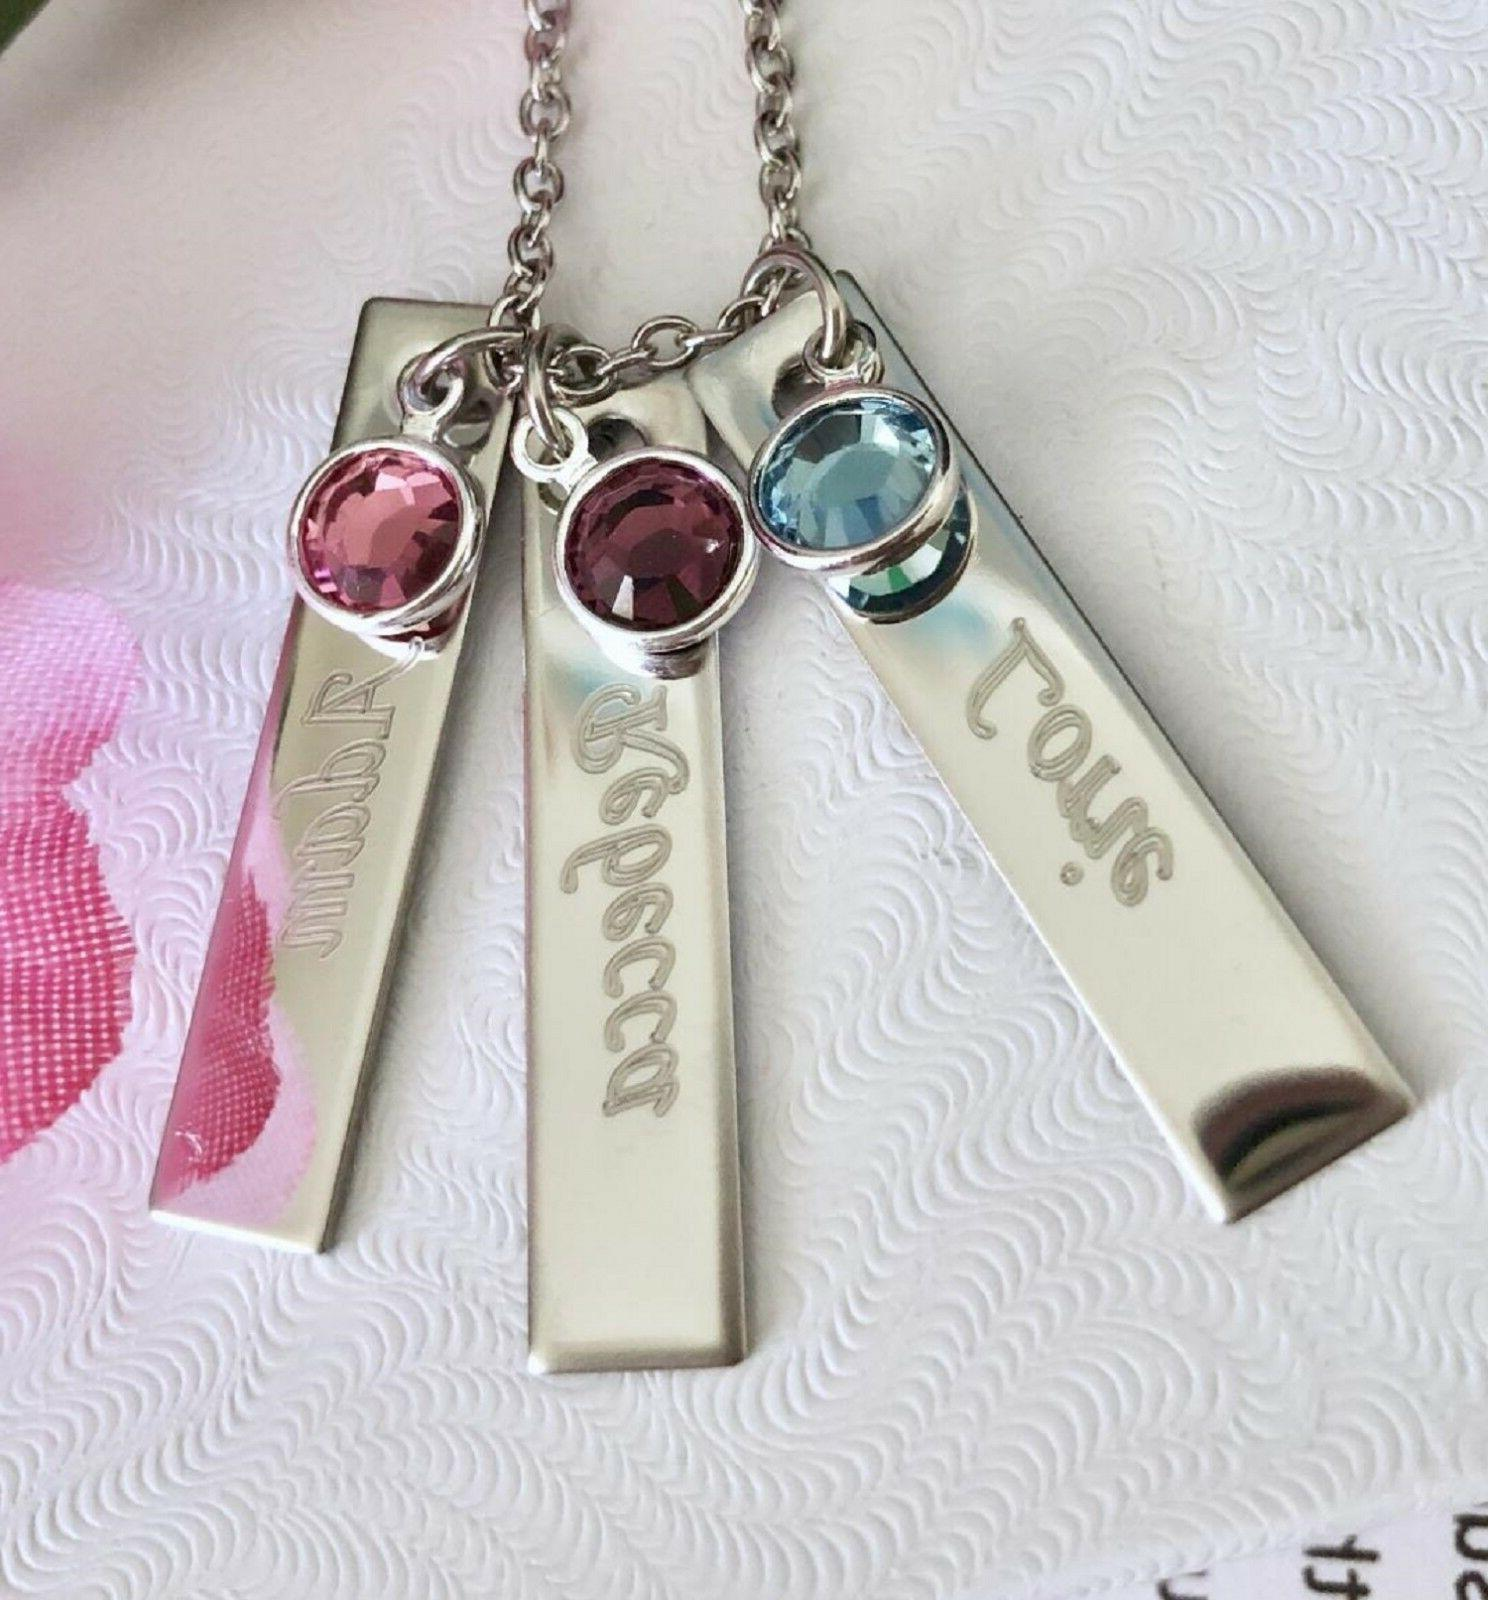 Personalized name/stone Stainless Name Bar Vertical